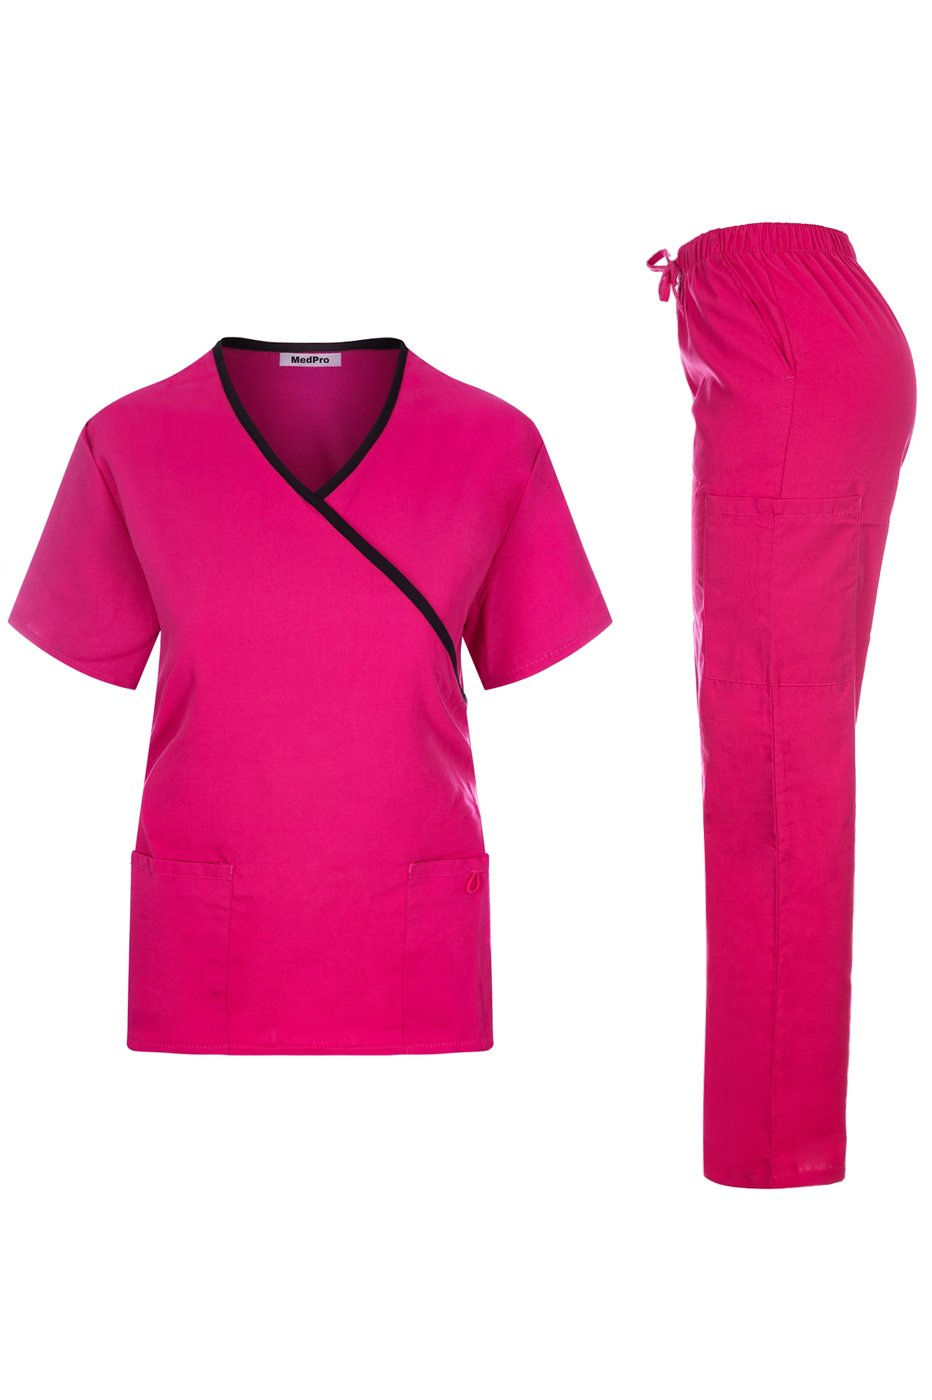 MedPro Women's Contrast Trimmed Solid Medical Scrub Set Mock Wrap Top and Cargo Pants Hot Pink & Black M (GT-756)